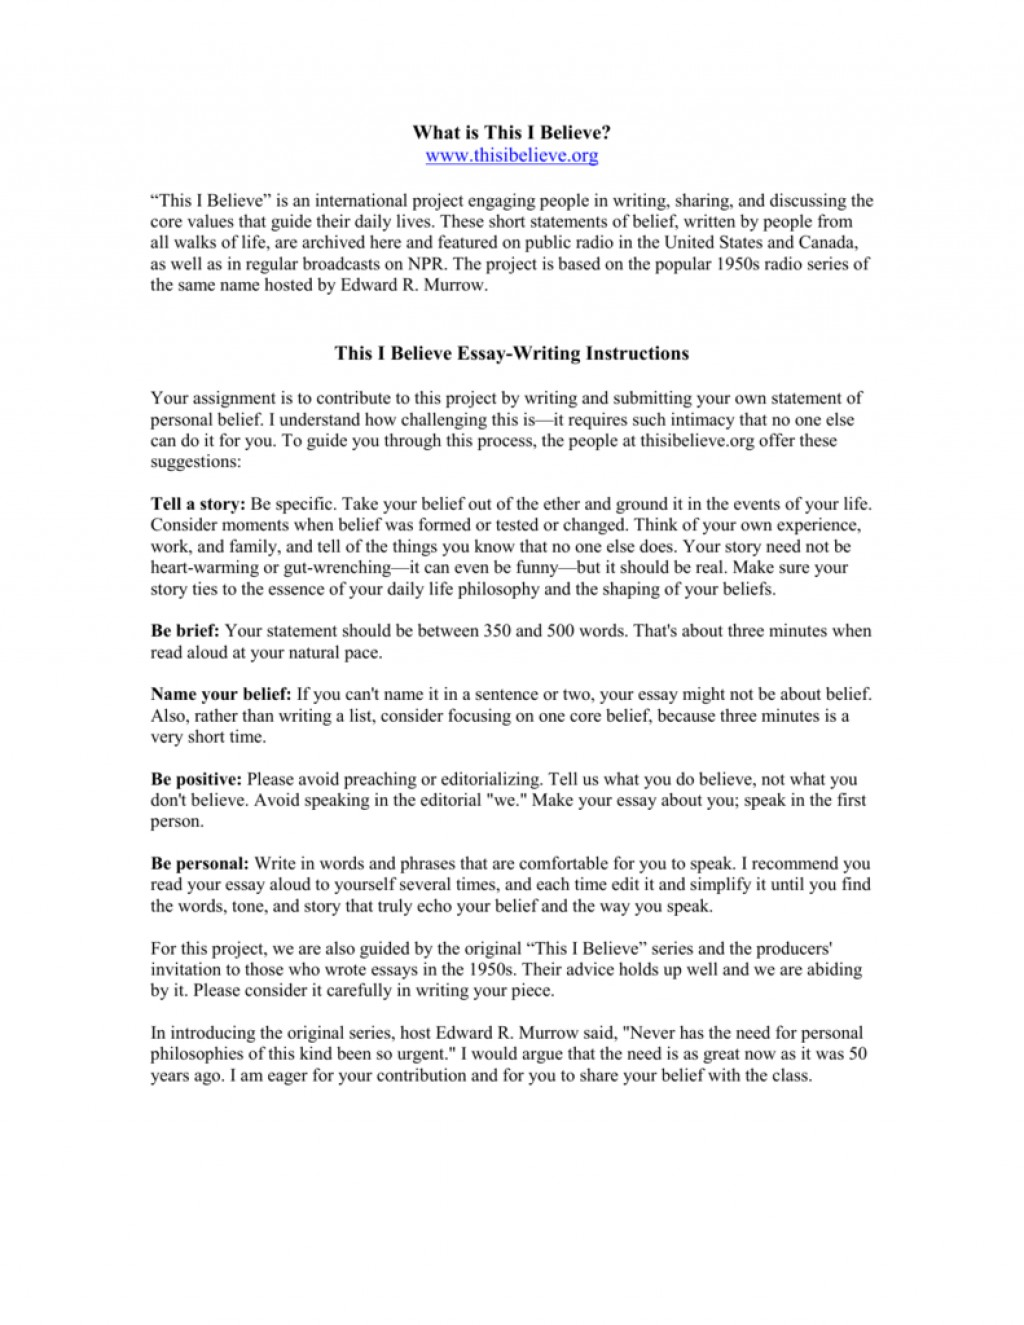 002 What Is This I Believe Www Thisibelieve Org Essay 008807226 1 We Write Your For You Essays Featured Amazing Thisibelieve.org Large